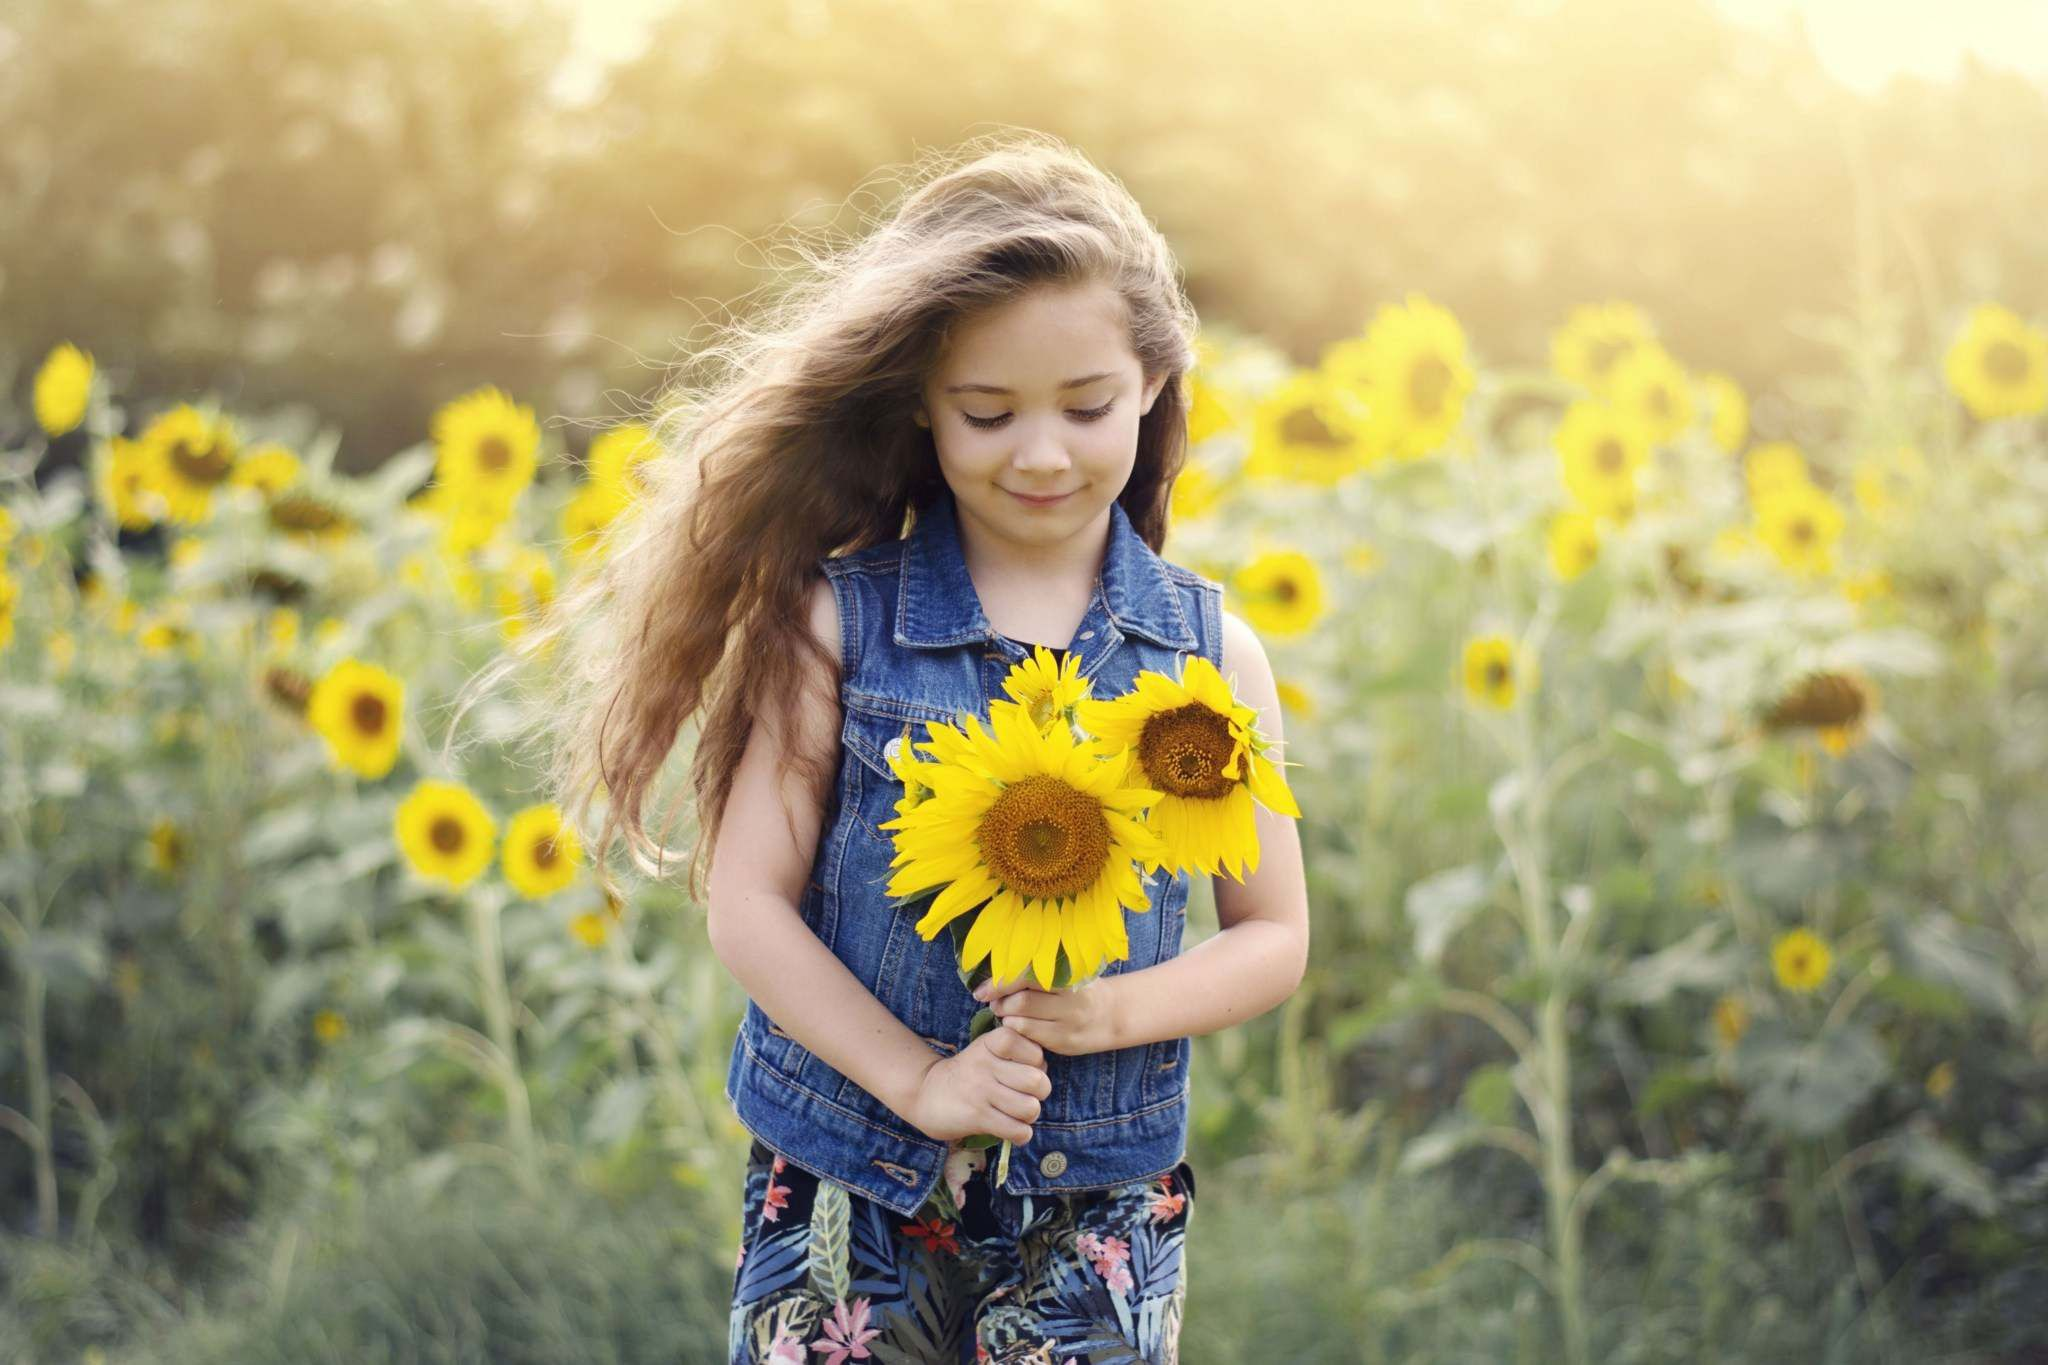 Sunflower Field Natural Light Photographers Toddler Photography 5 Year Old Photoshoot C Sunflower Photography Toddler Photoshoot Natural Light Photographer